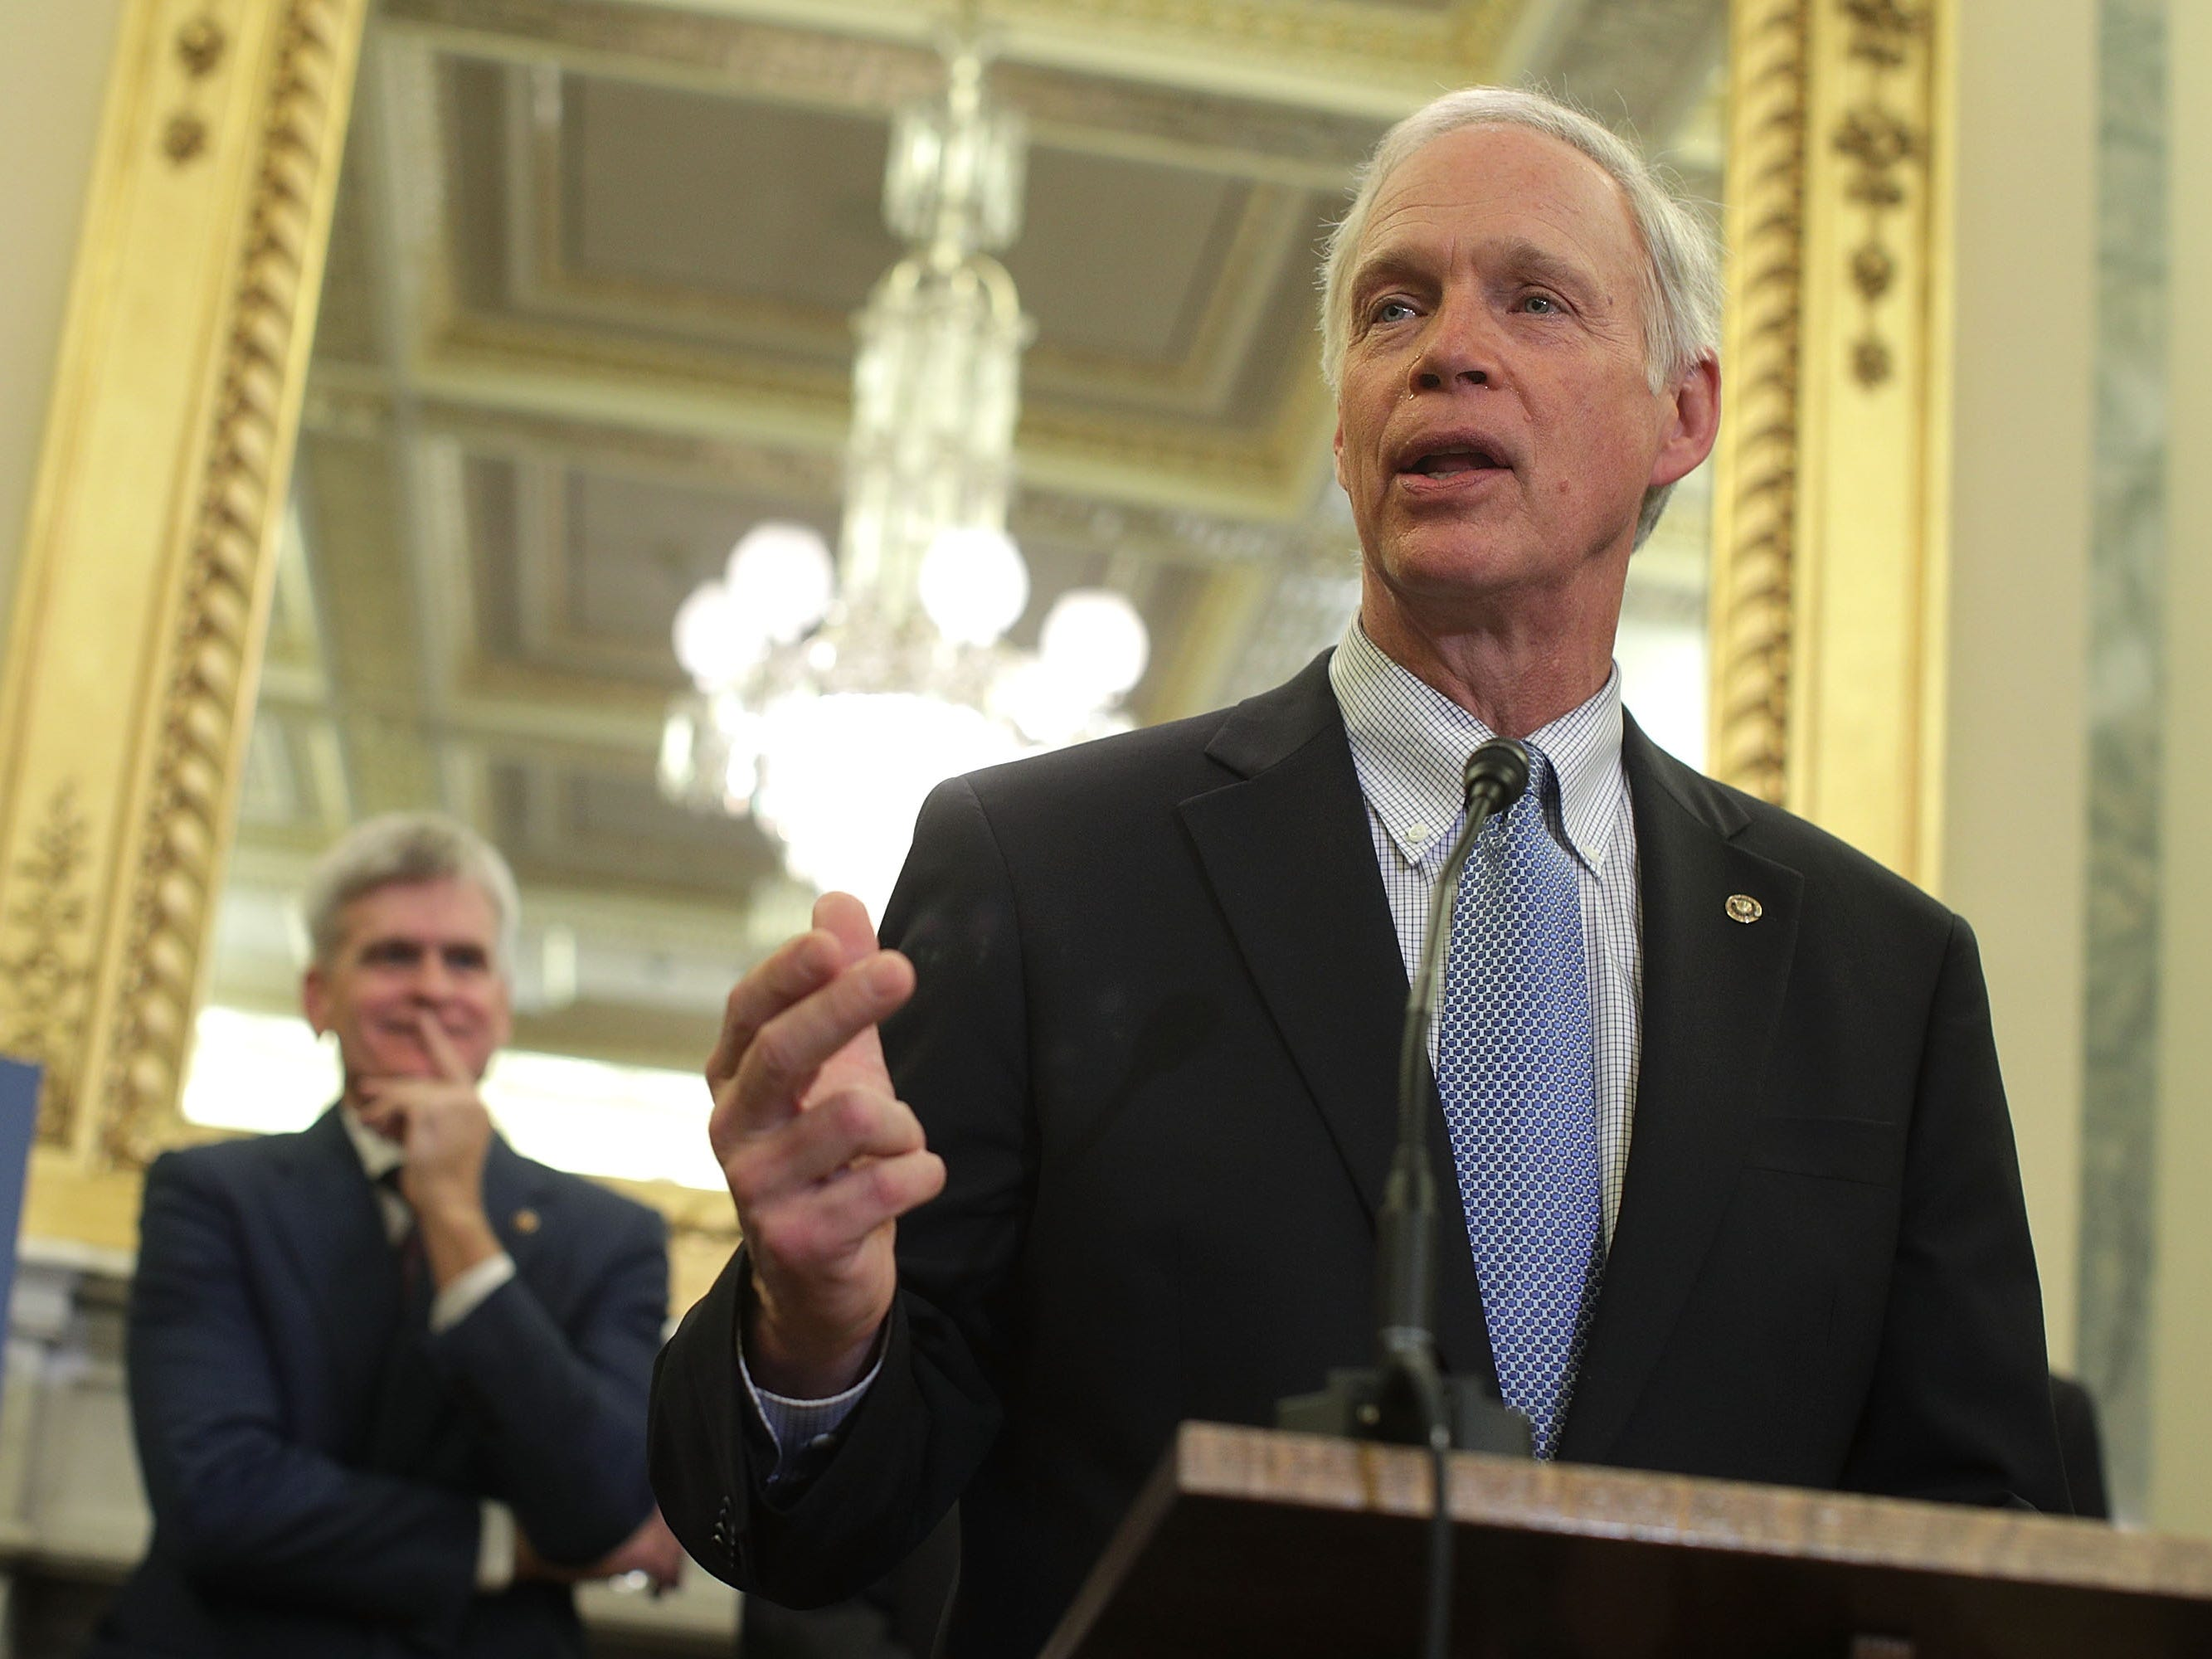 Sen. Ron Johnson (R-WI) (R) speaks as Sen. Bill Cassidy (R-LA) (L) listens during a news conference on health care on Capitol Hill in Washington.